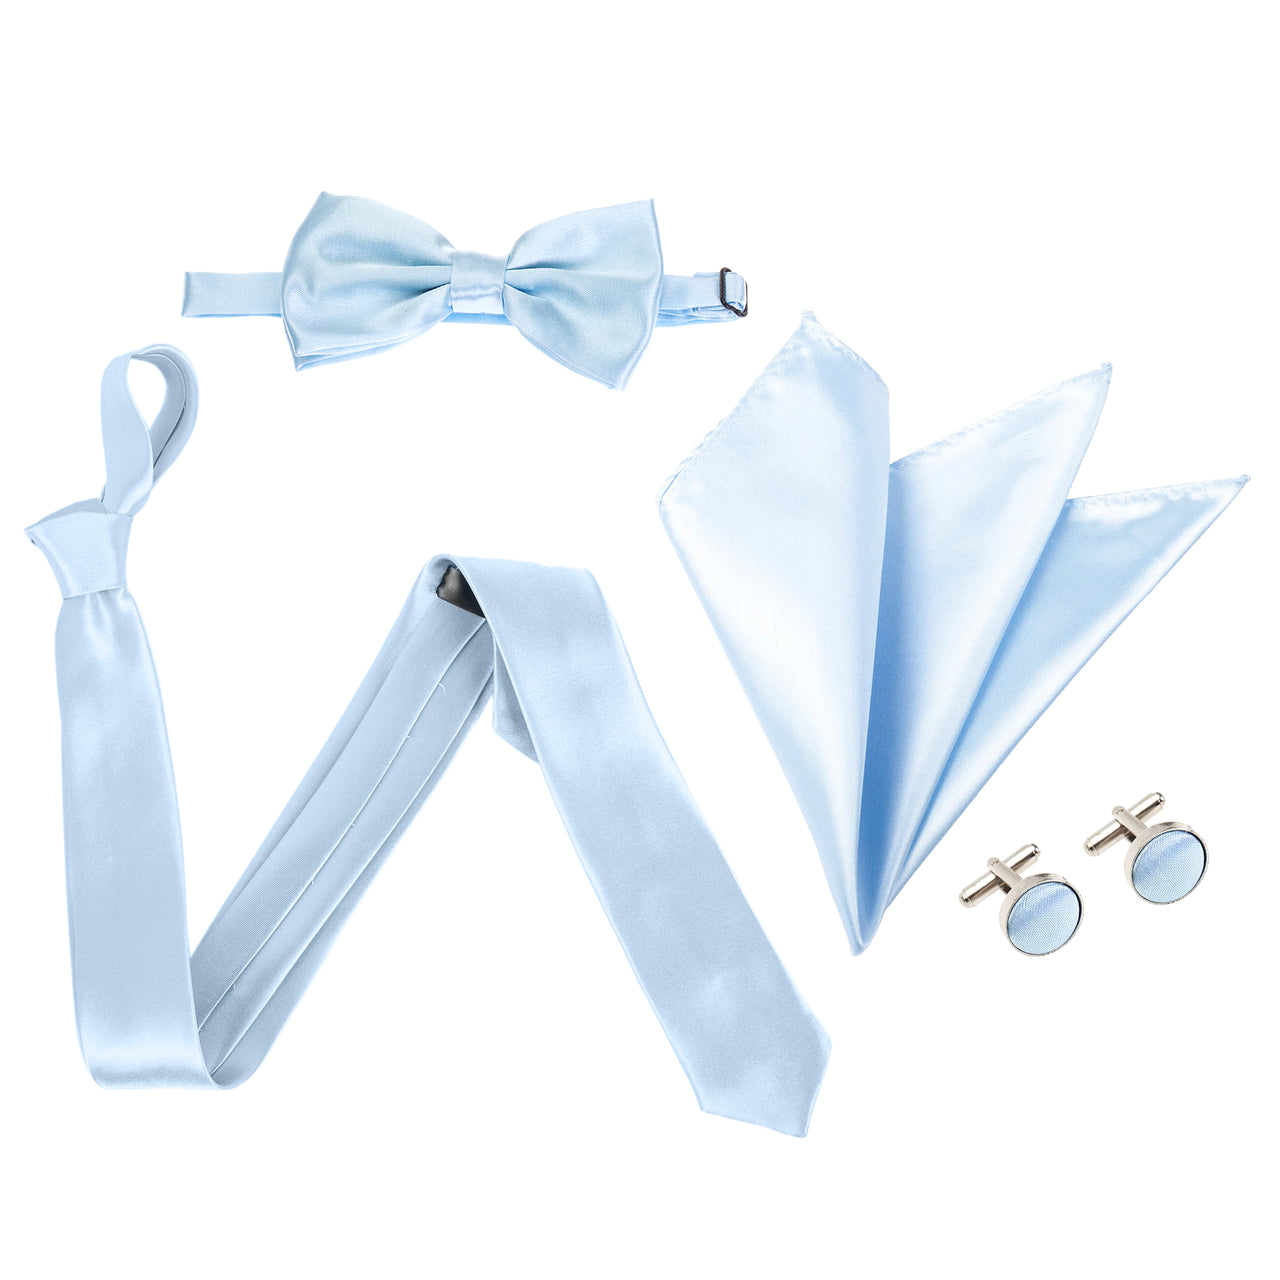 "4pc Tie Set: Slim 2"" Tie, Bow Tie, Handkerchief & Cufflinks - Baby Blue"